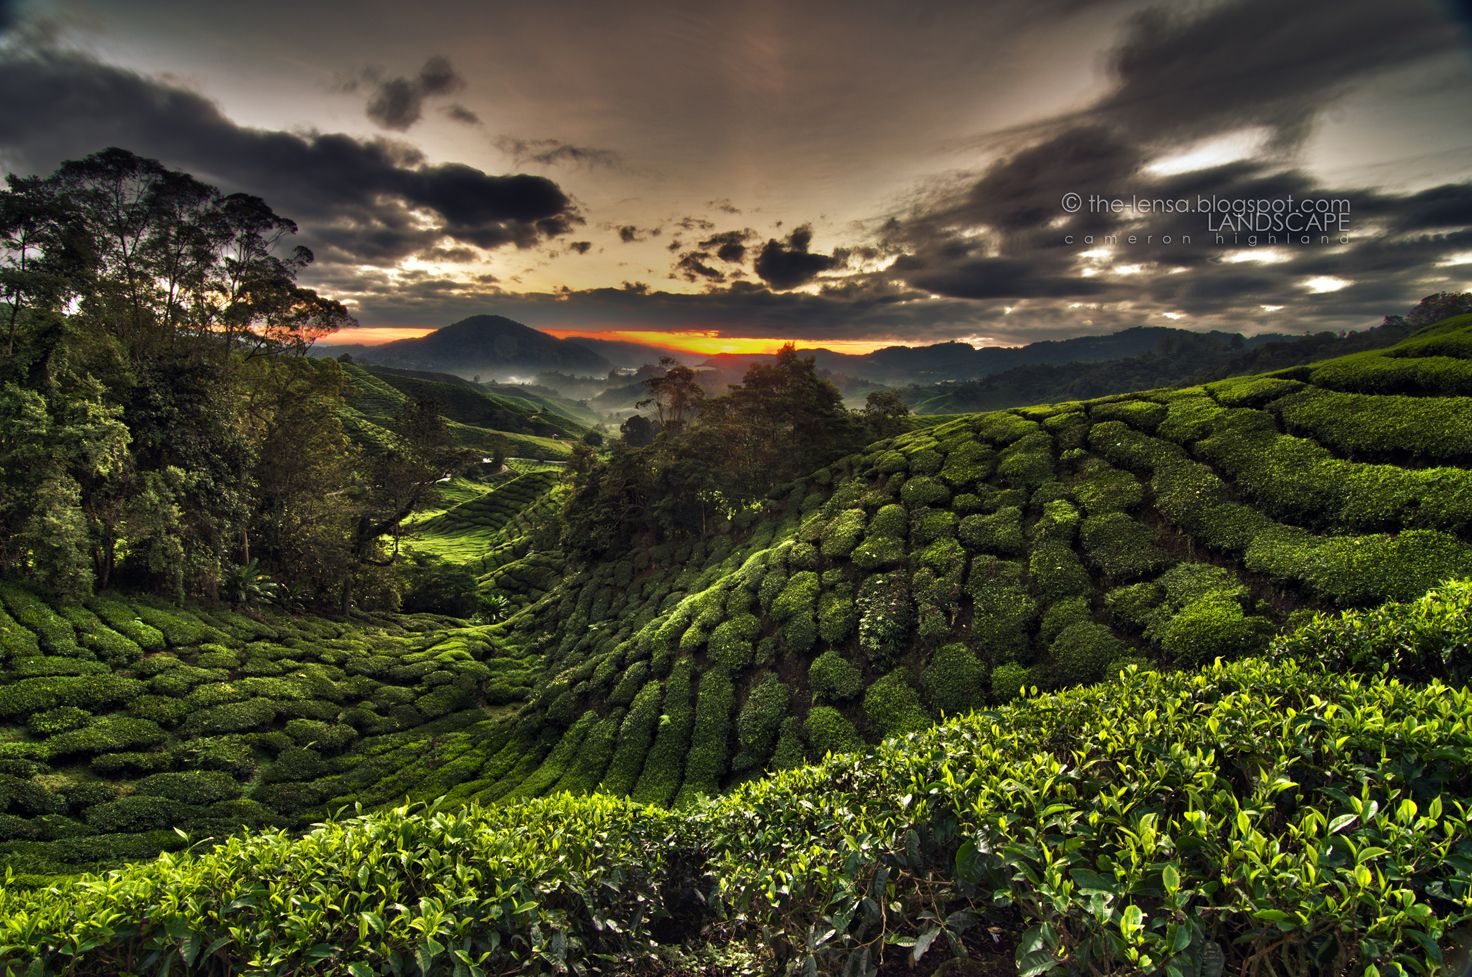 mohyiddin | LENSA photography: CAMERON HIGHLAND & MOSSY FOREST